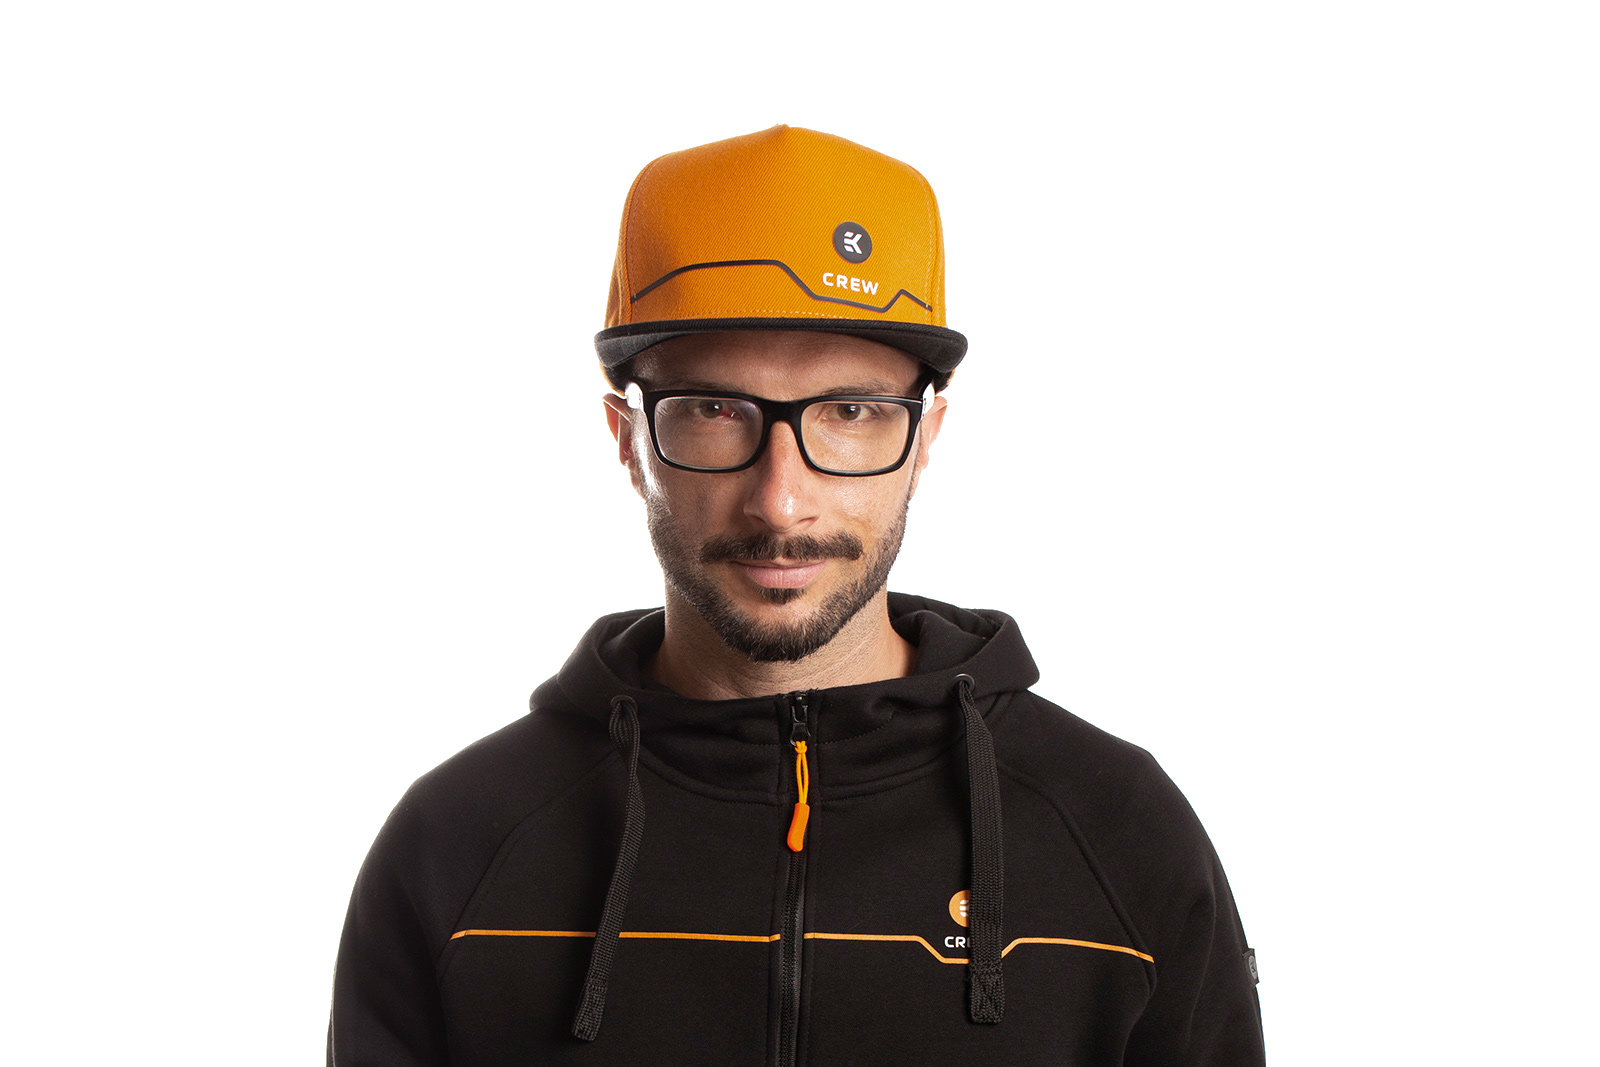 EK-Crew_Orange_Snapback_Cap_4